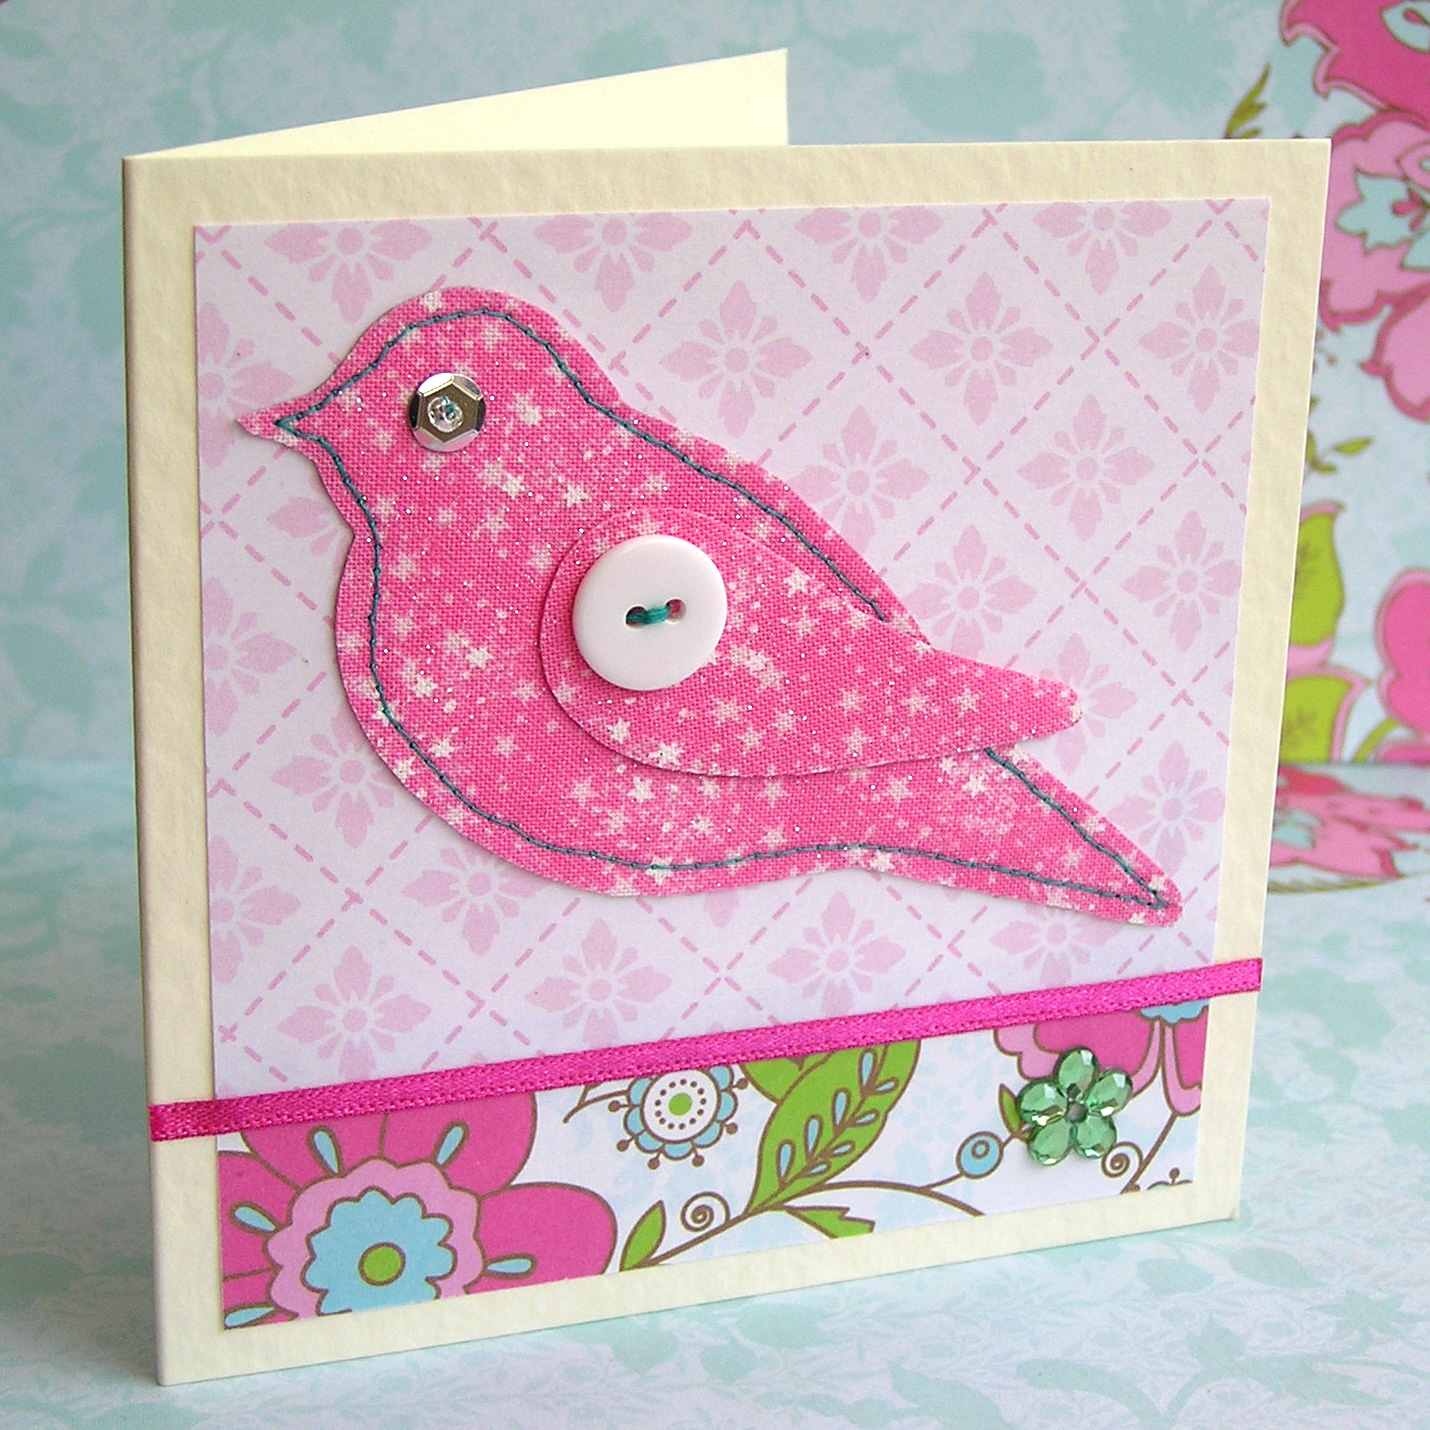 Hazel fisher creations fabric bird card kit tutorial for Fabric crafts to make